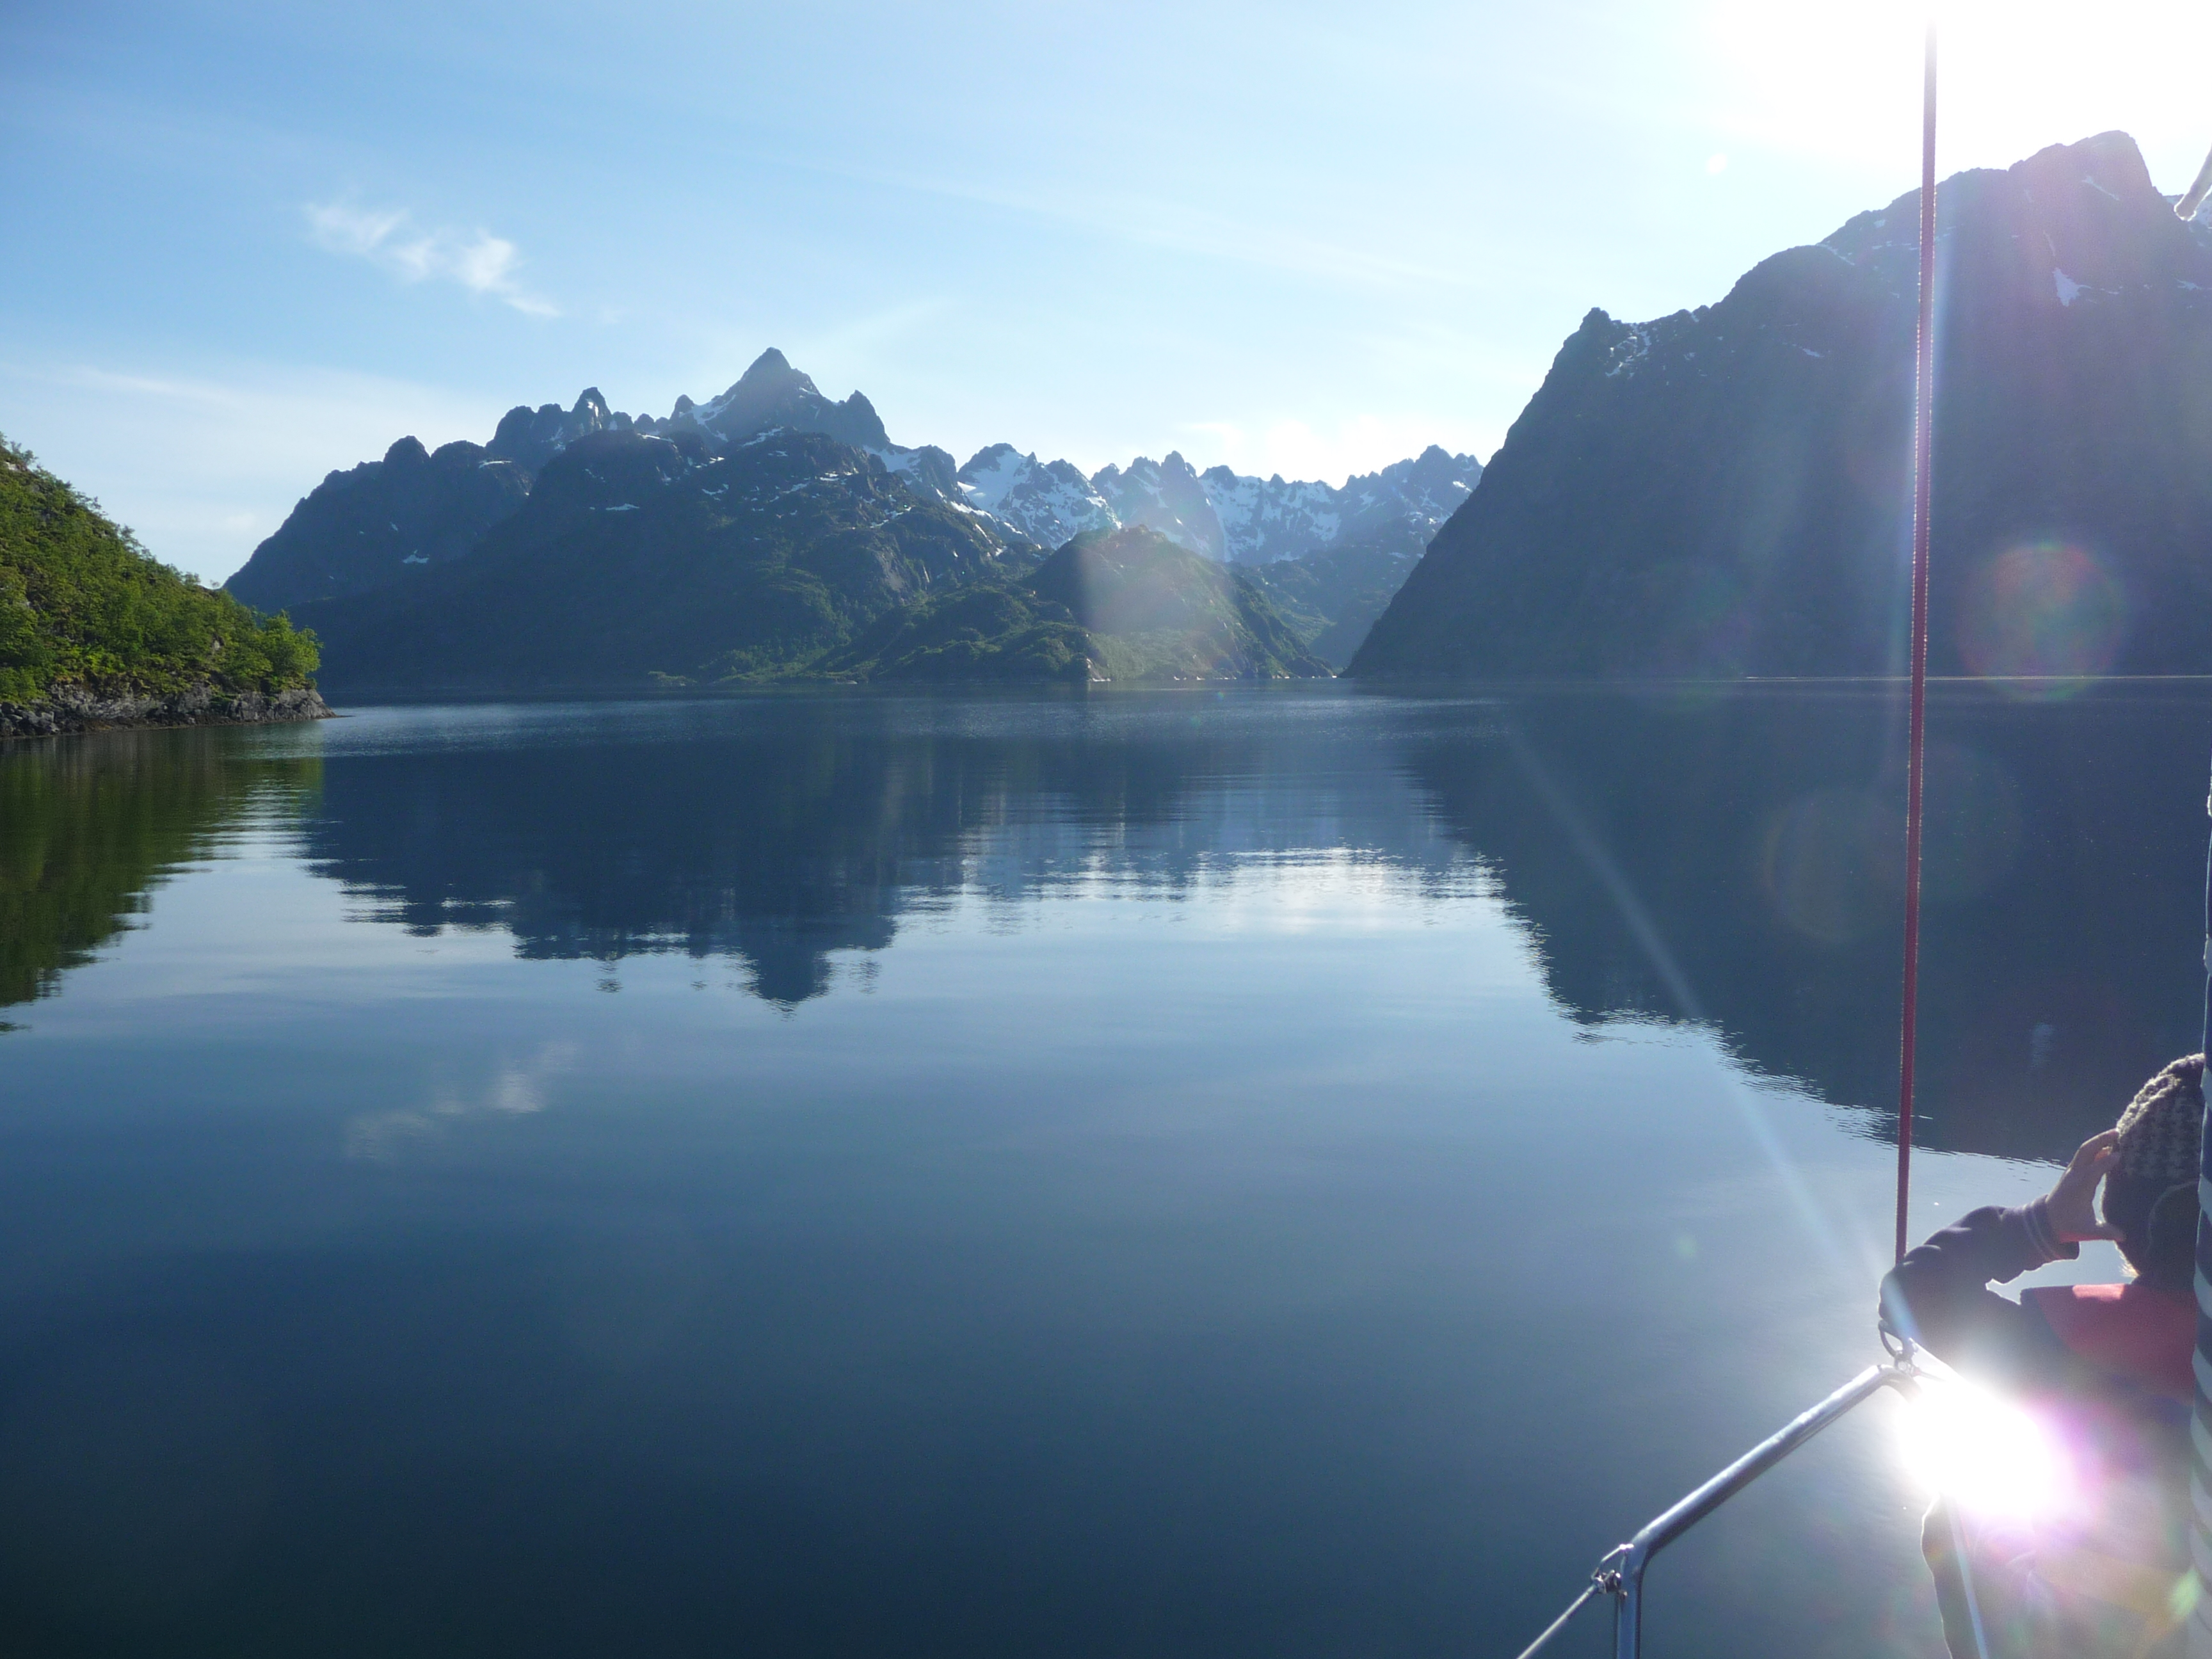 The Lofoten Islands are one of the jewels of Norway